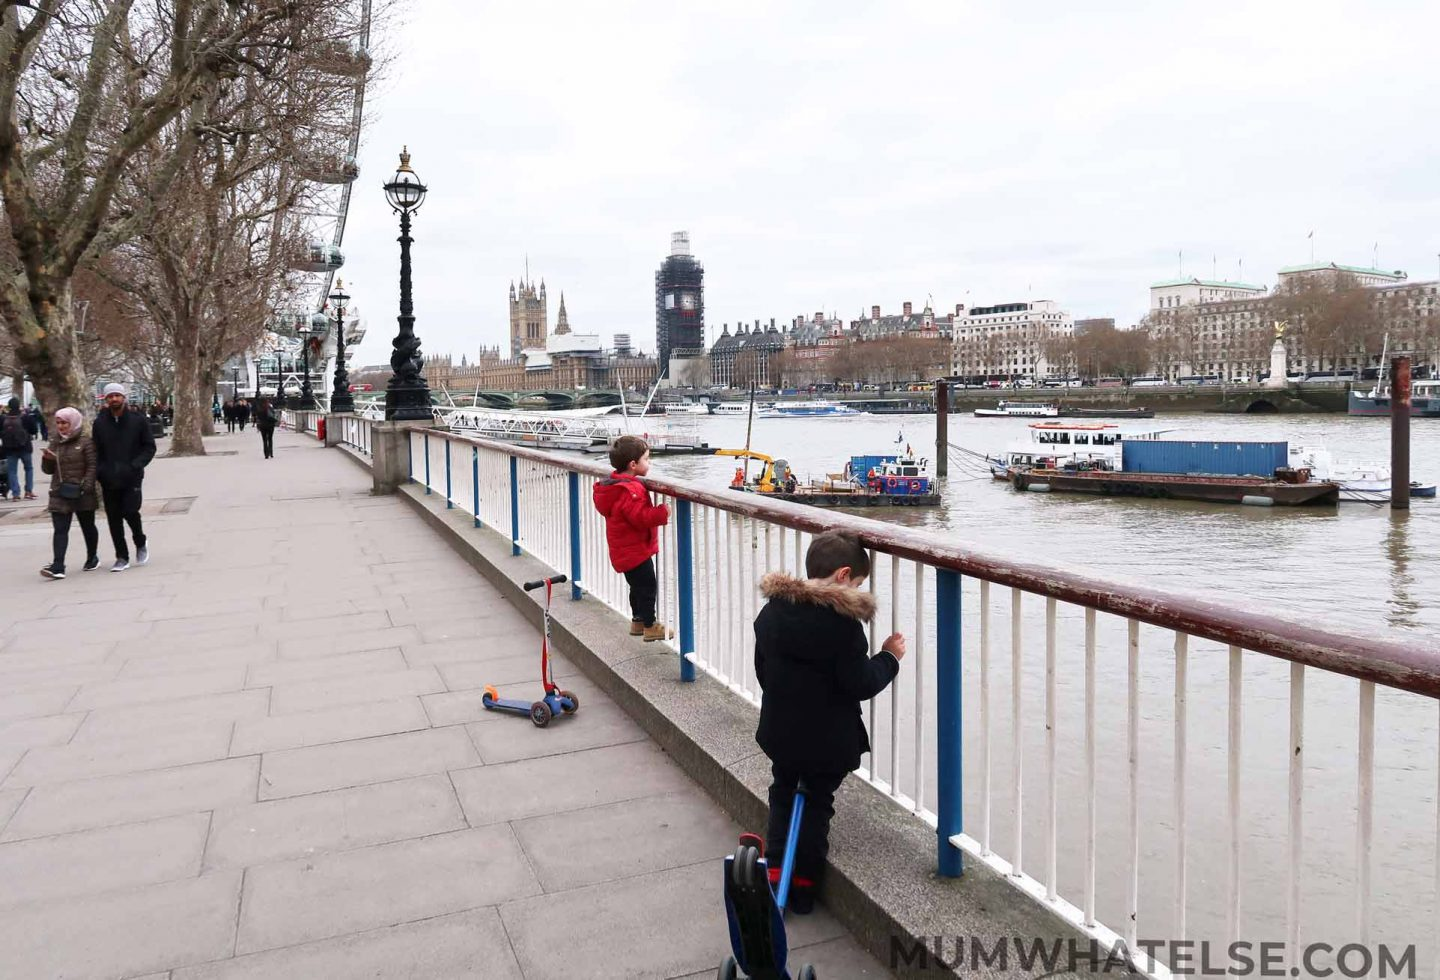 Two kids along the South Bank facing the Thames and the Big Ben